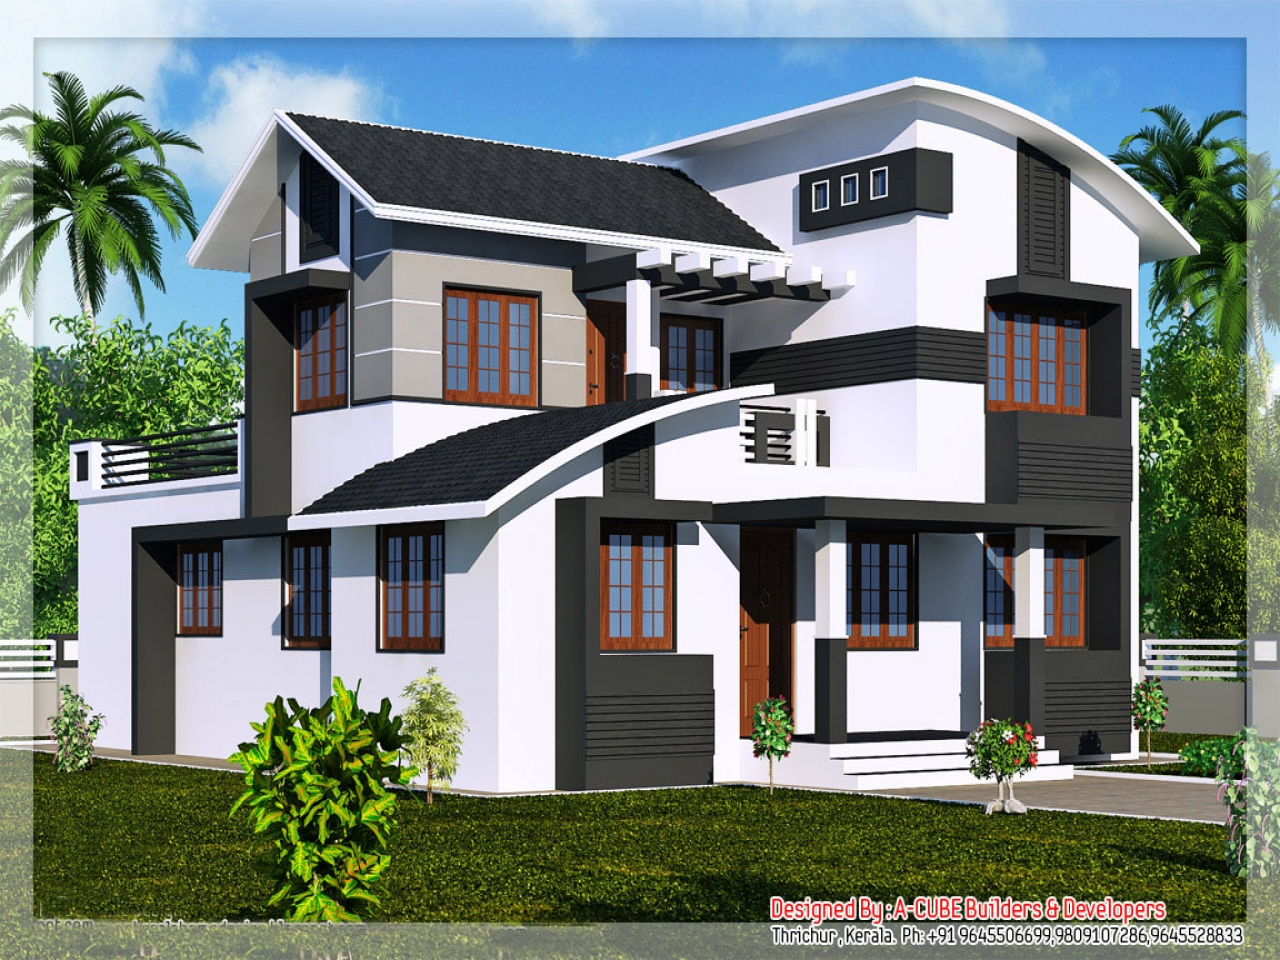 India duplex house design duplex house plans and designs for House plans usa